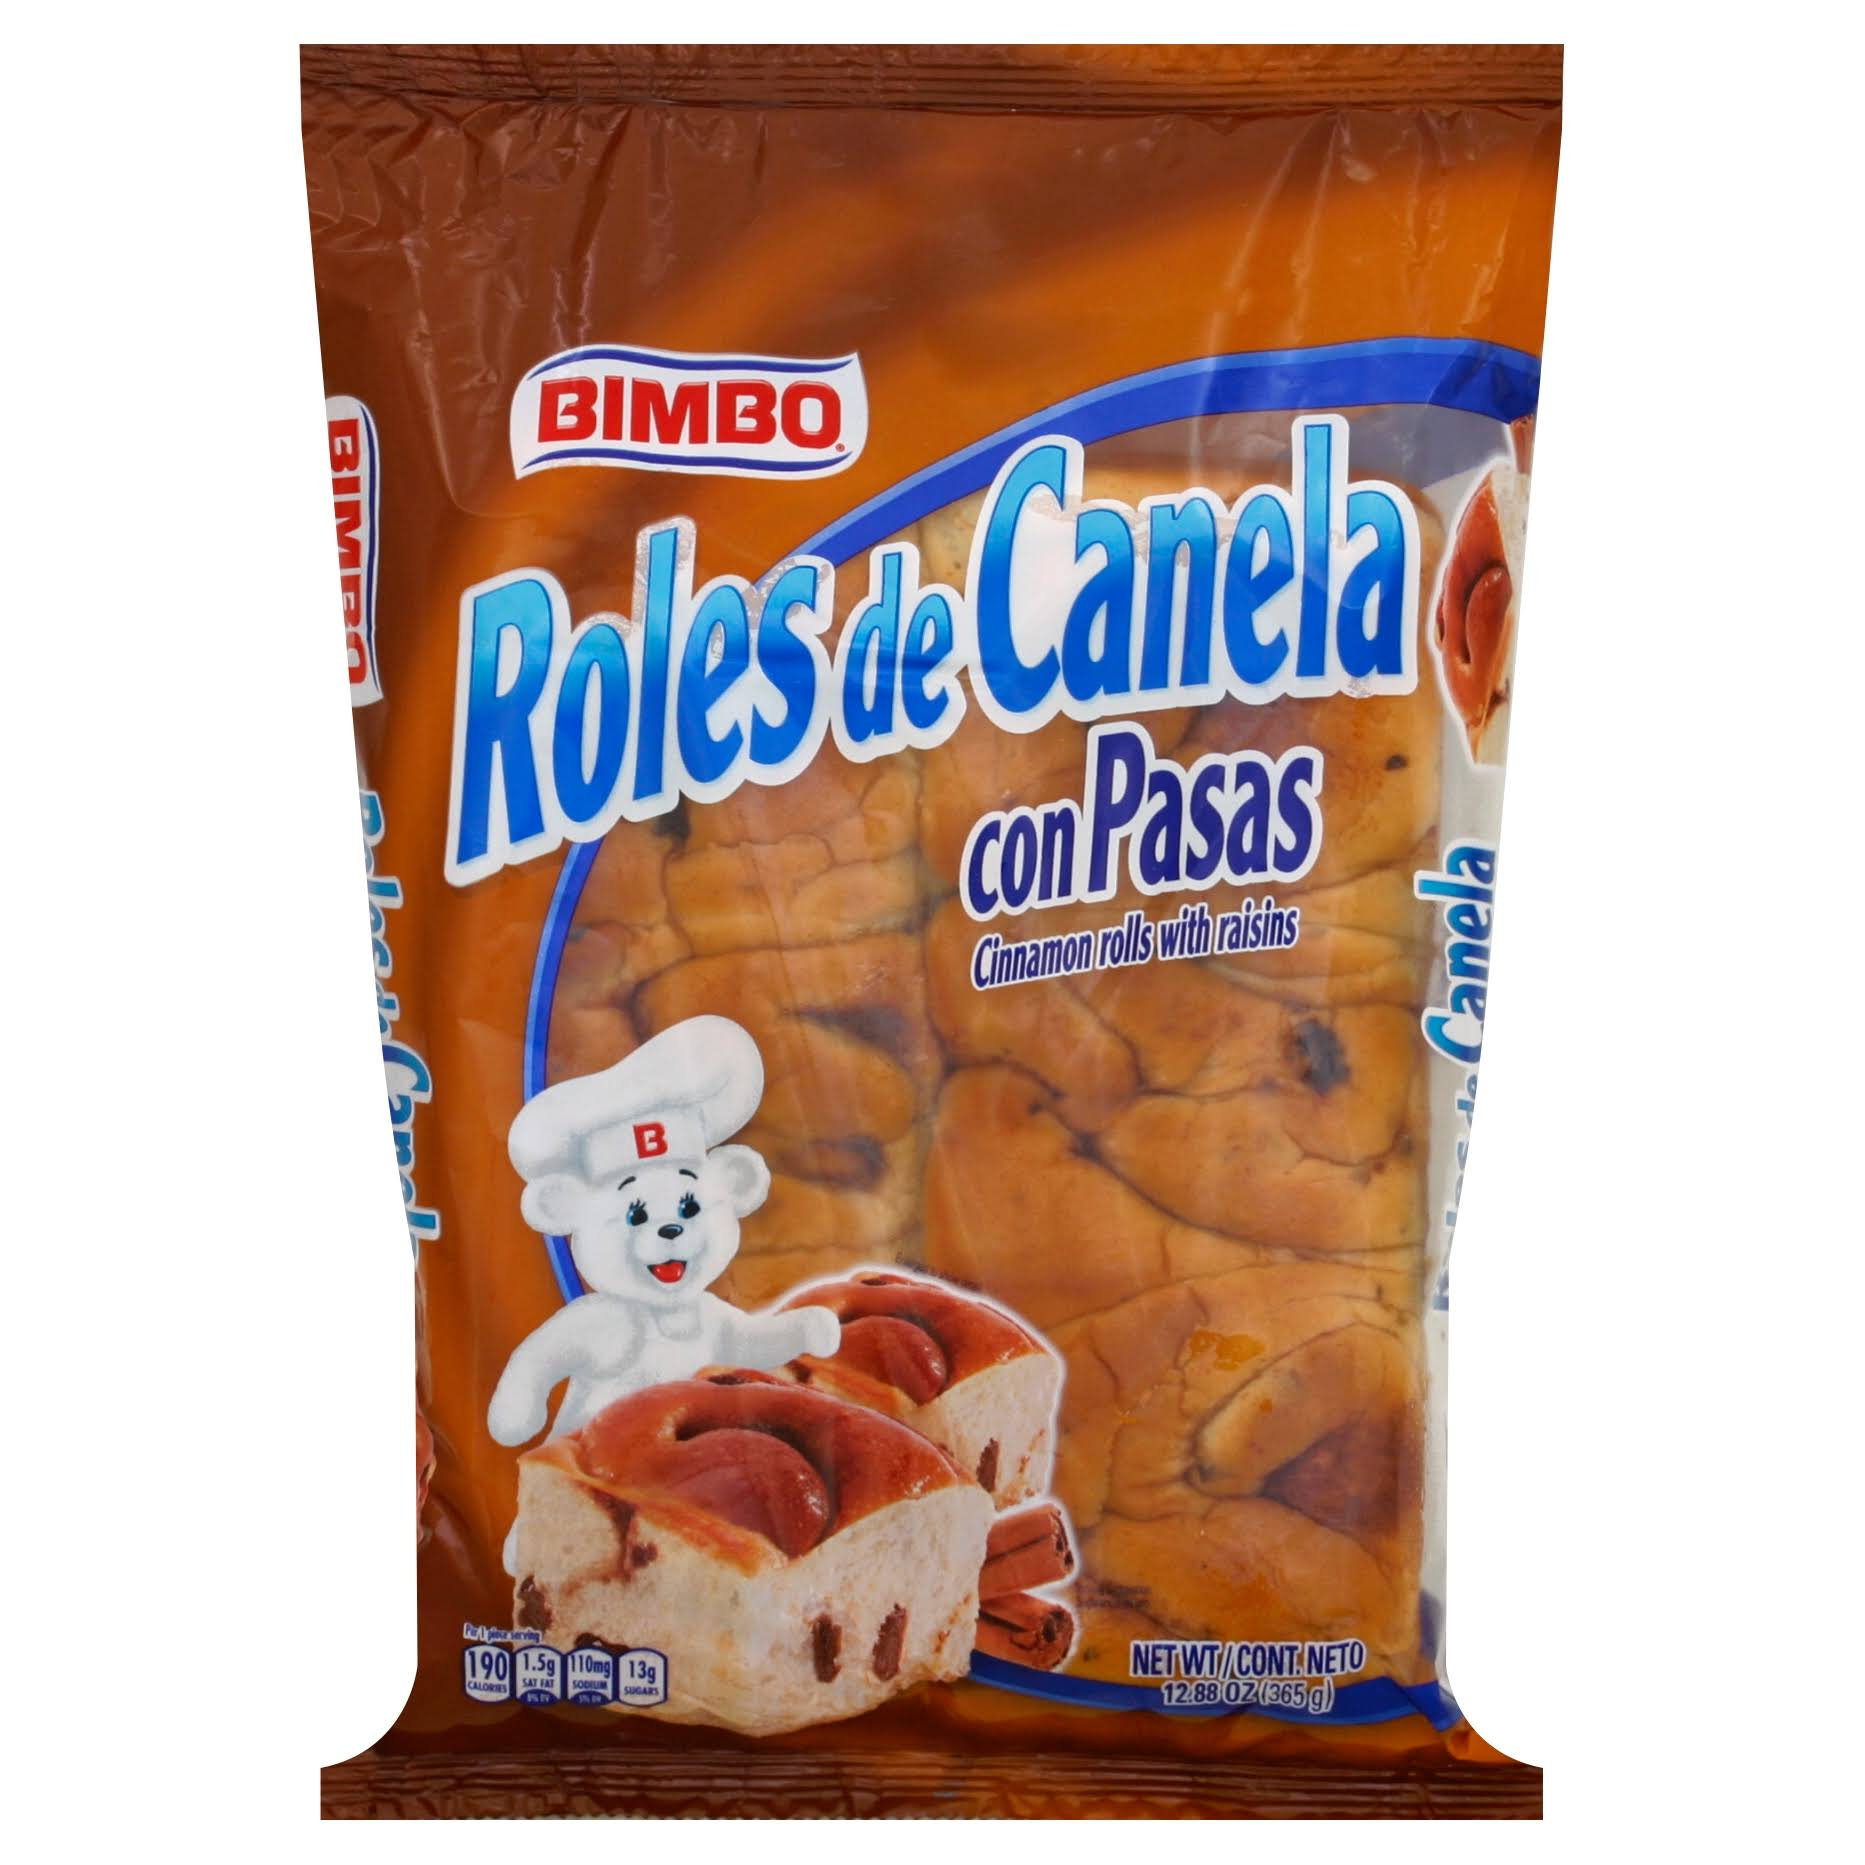 Bimbo Cinnamon Rolls, with Raisins - 12.88 oz